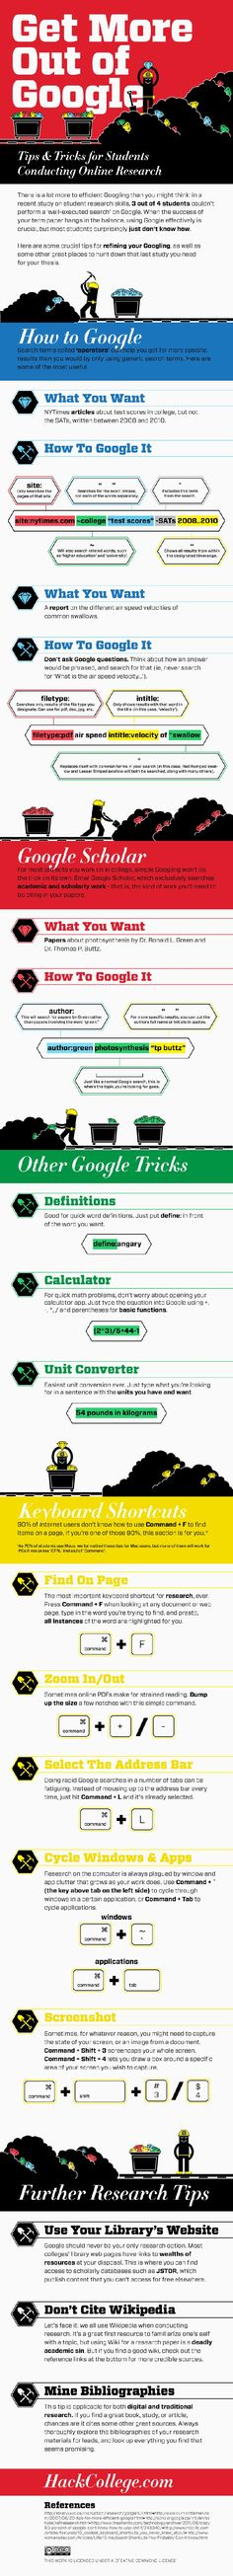 Google Search Tips Infographic- really interesting!